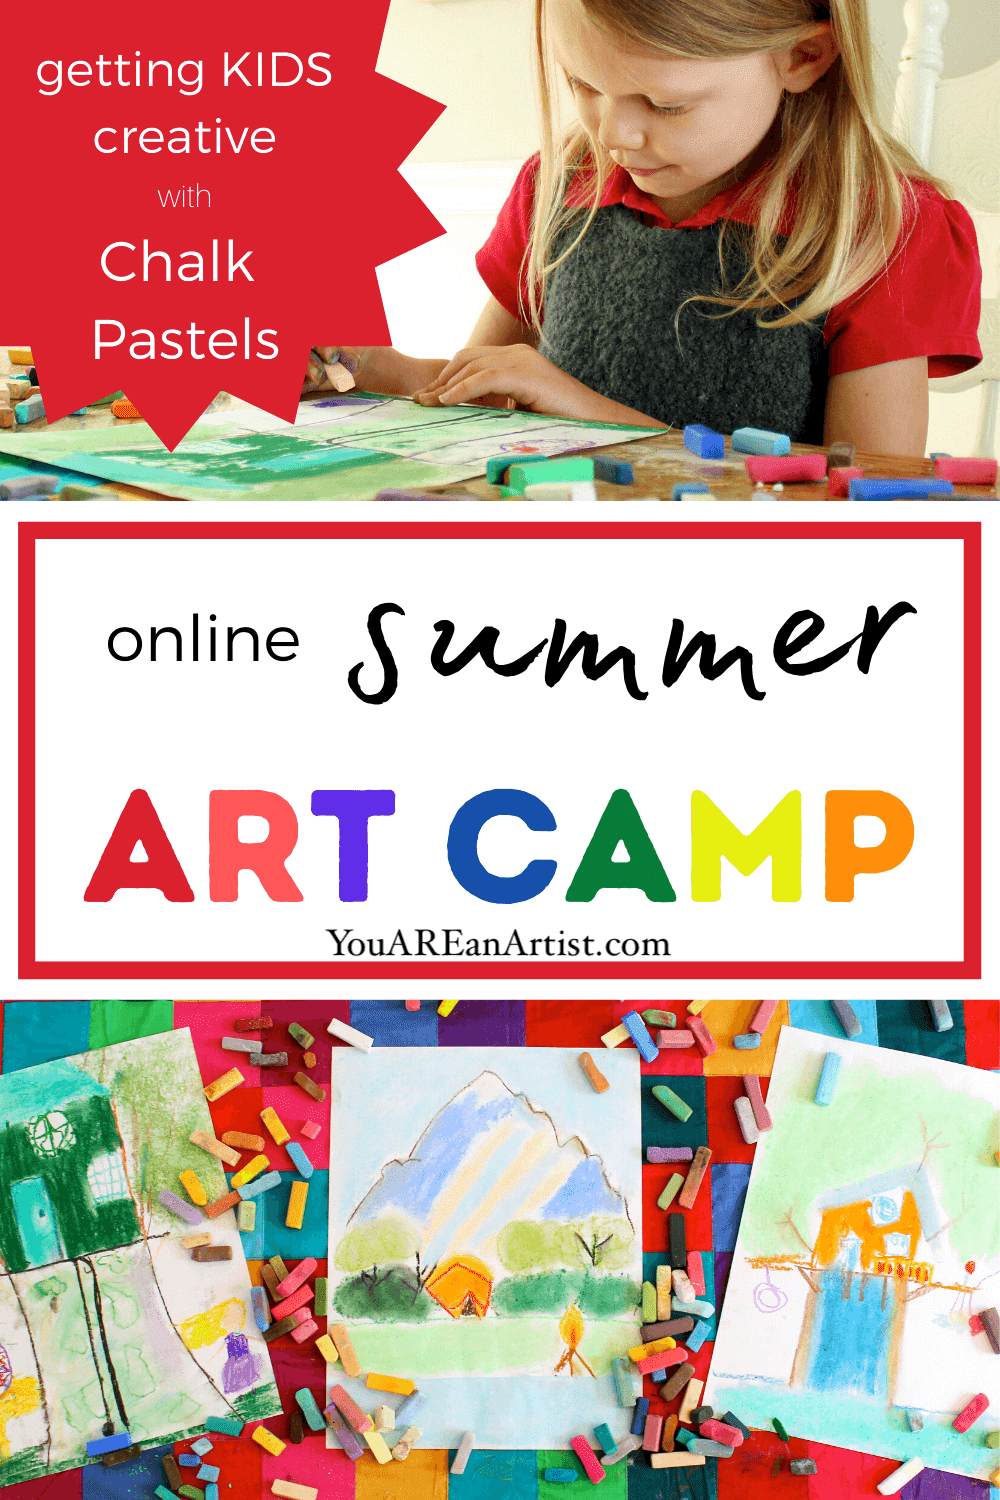 "Even if you can't get your children to a ""real"" summer art camp this year, I want to encourage you to explore an online camp. With the wonders of technology at our fingertips, this can be an amazing option for many families to choose from. Plus, art camp can be an easy way for kids to learn to express themselves this summer. That's because art gives children the chance to be creative, carefree, and engaged. Your child will gain self-confidence as they develop the skills and techniques to bring their creations to fruition. No artistic talent needed. Just an openness to creative expression!"